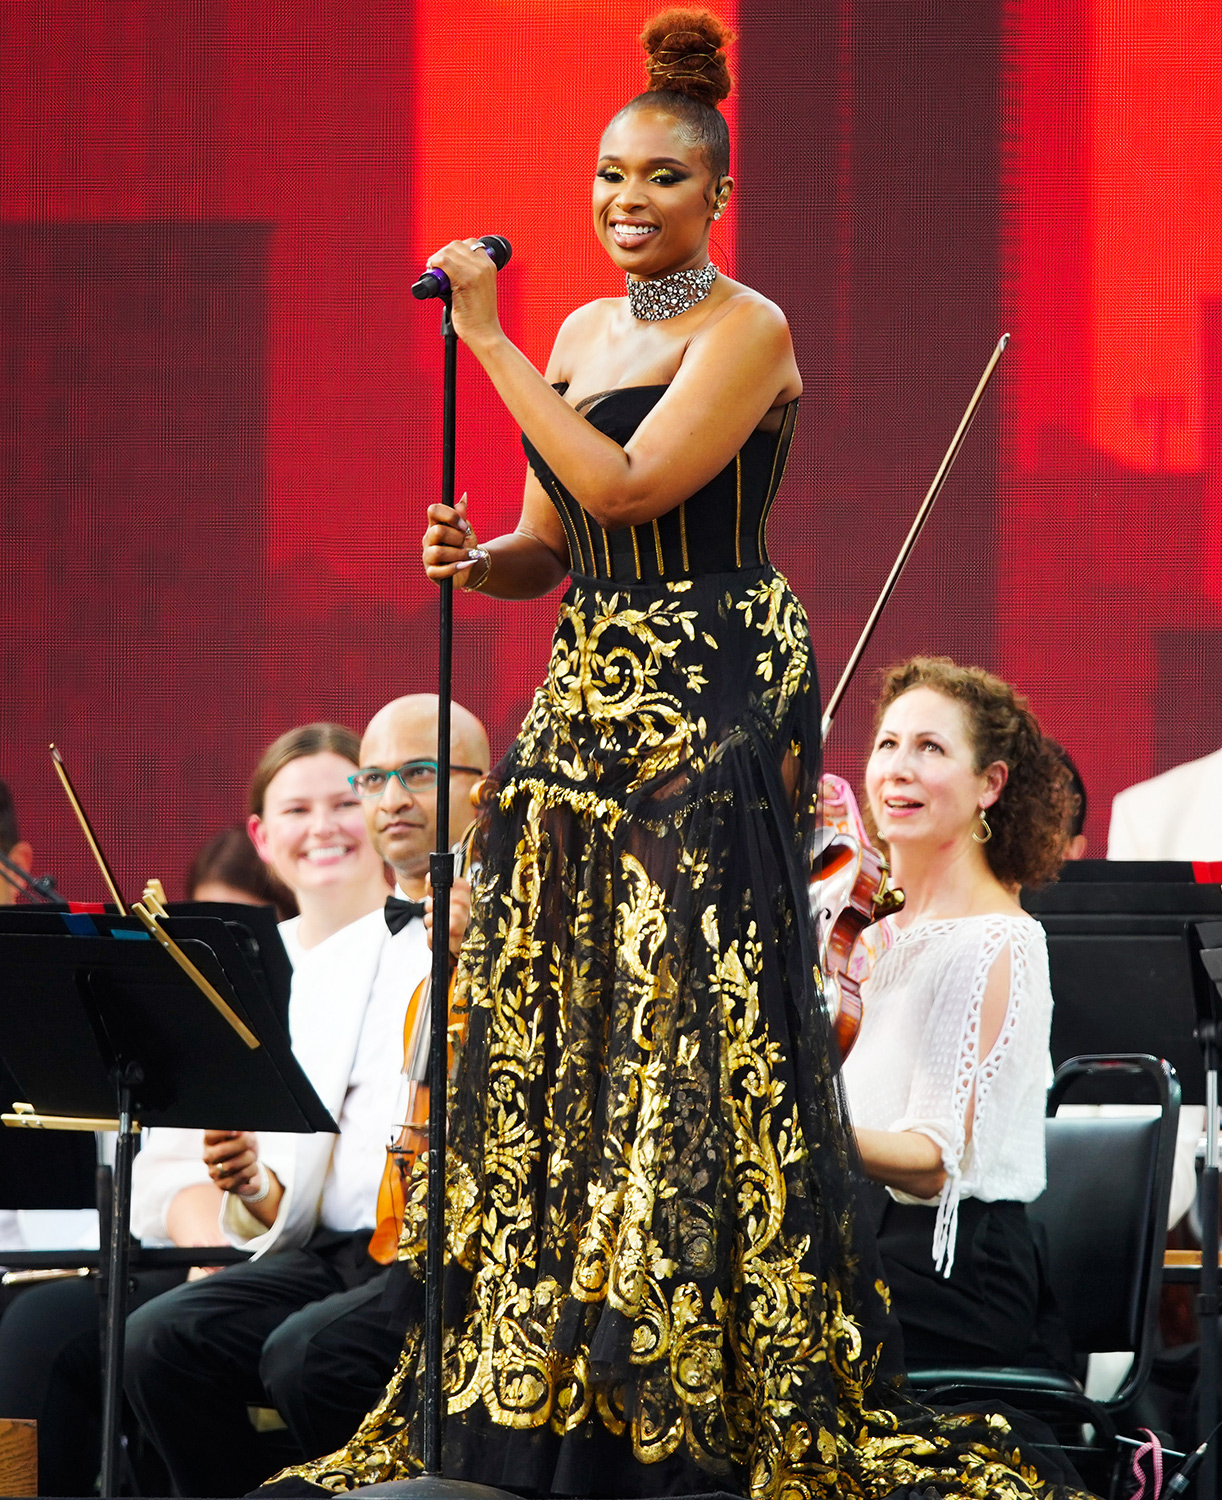 Jennifer Hudson performs during We Love NYC: The Homecoming Concert at Central Park, Great Lawn on August 21, 2021 in New York City.